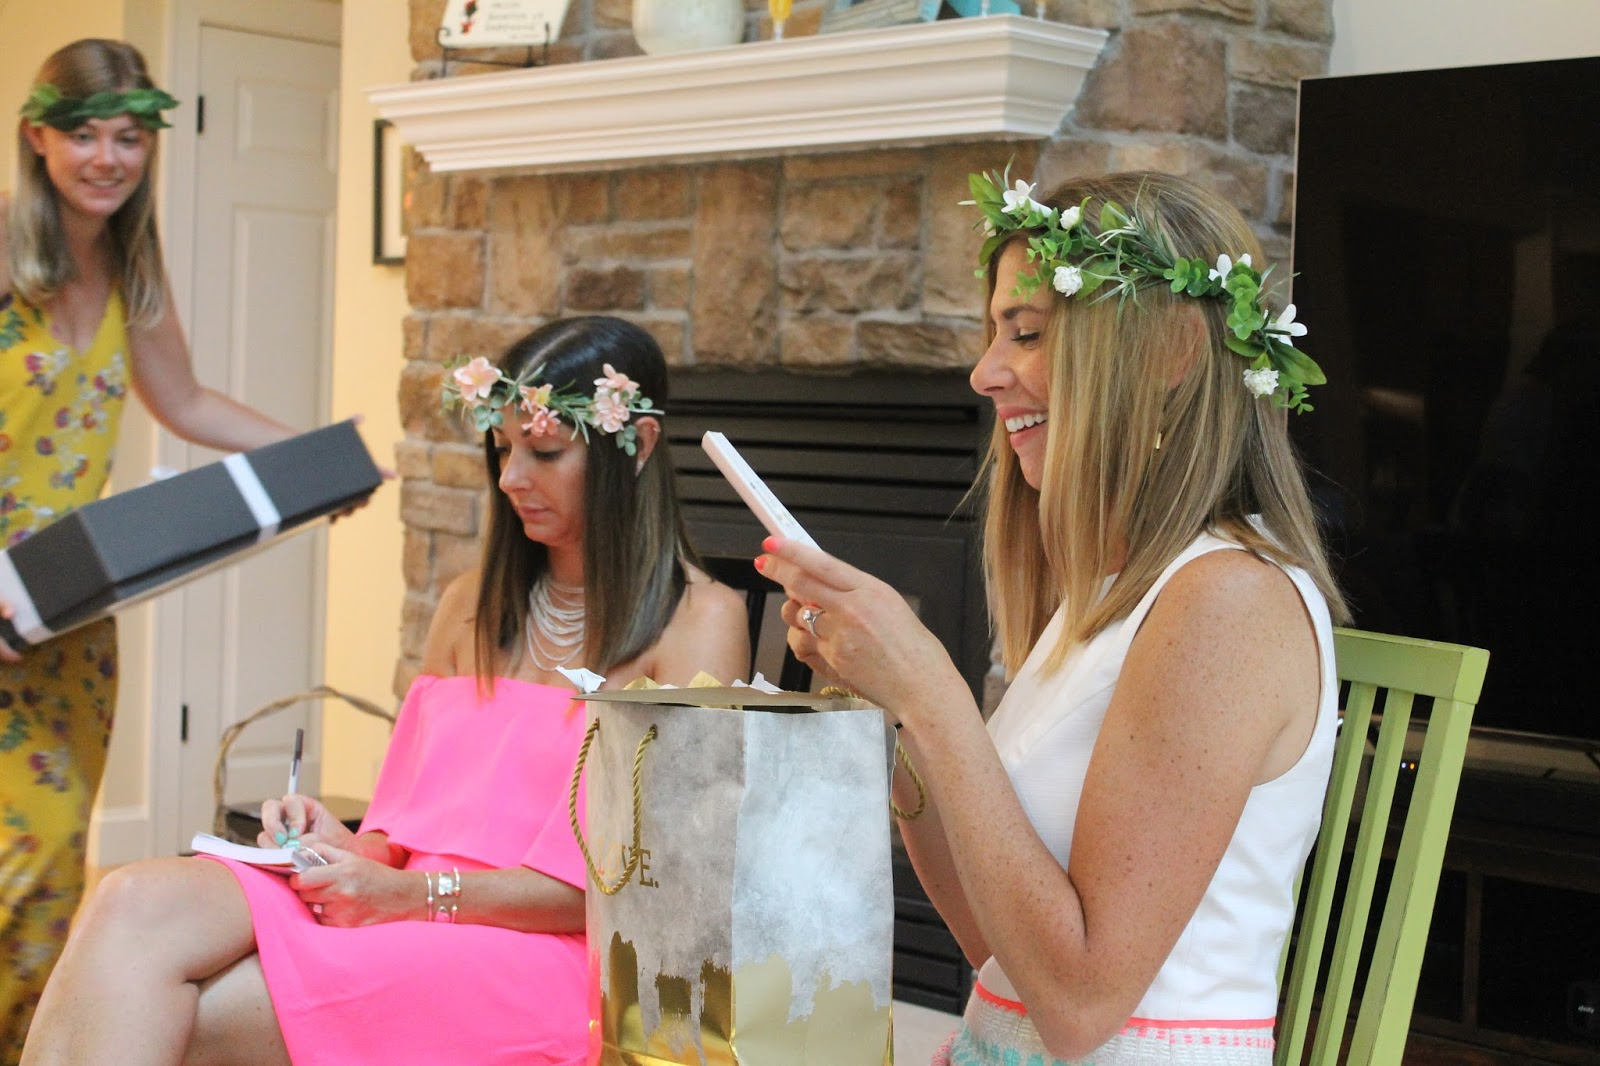 back in july we threw my sister a greek themed bridal shower they are going to greece on their honeymoon all the guests wore handmade flower crowns